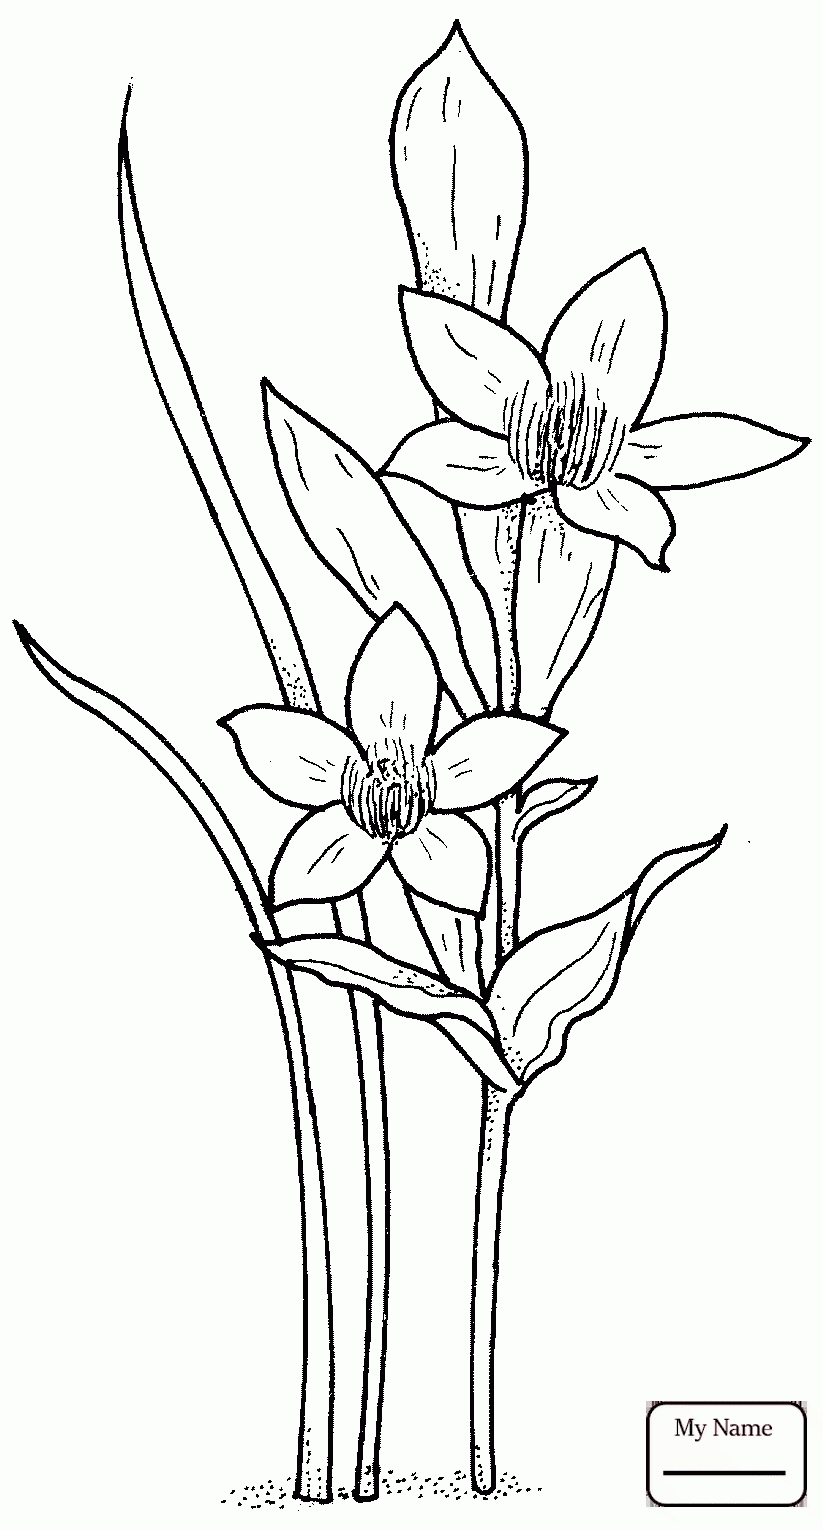 New Daffodil Coloring Pages Design Collection Of New Daffodil Flower Coloring Pages Collection Printable